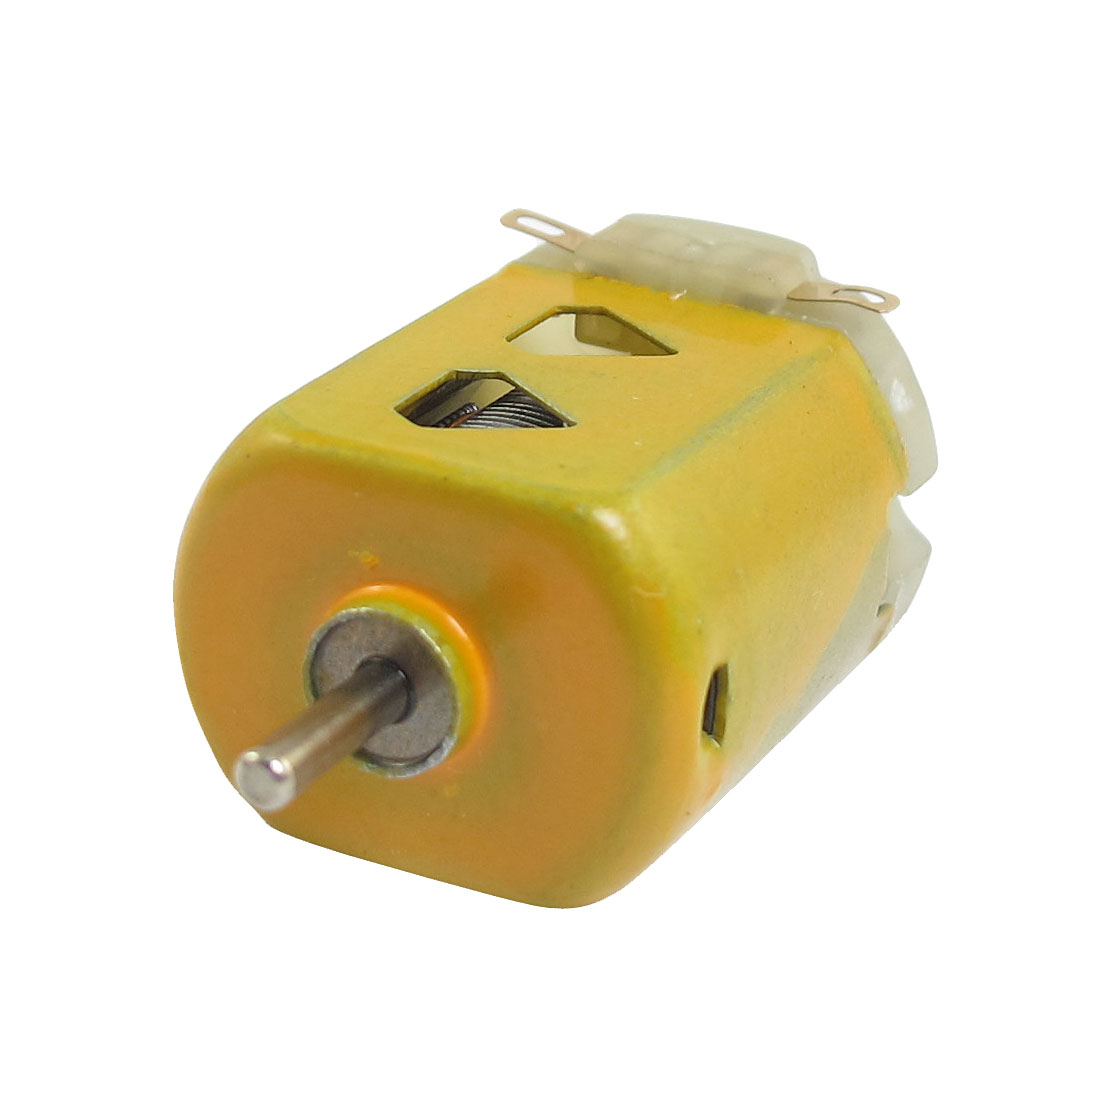 DC 1.5V 400mA 9000RPM Flat Motor 130 Yellow for DIY Robot